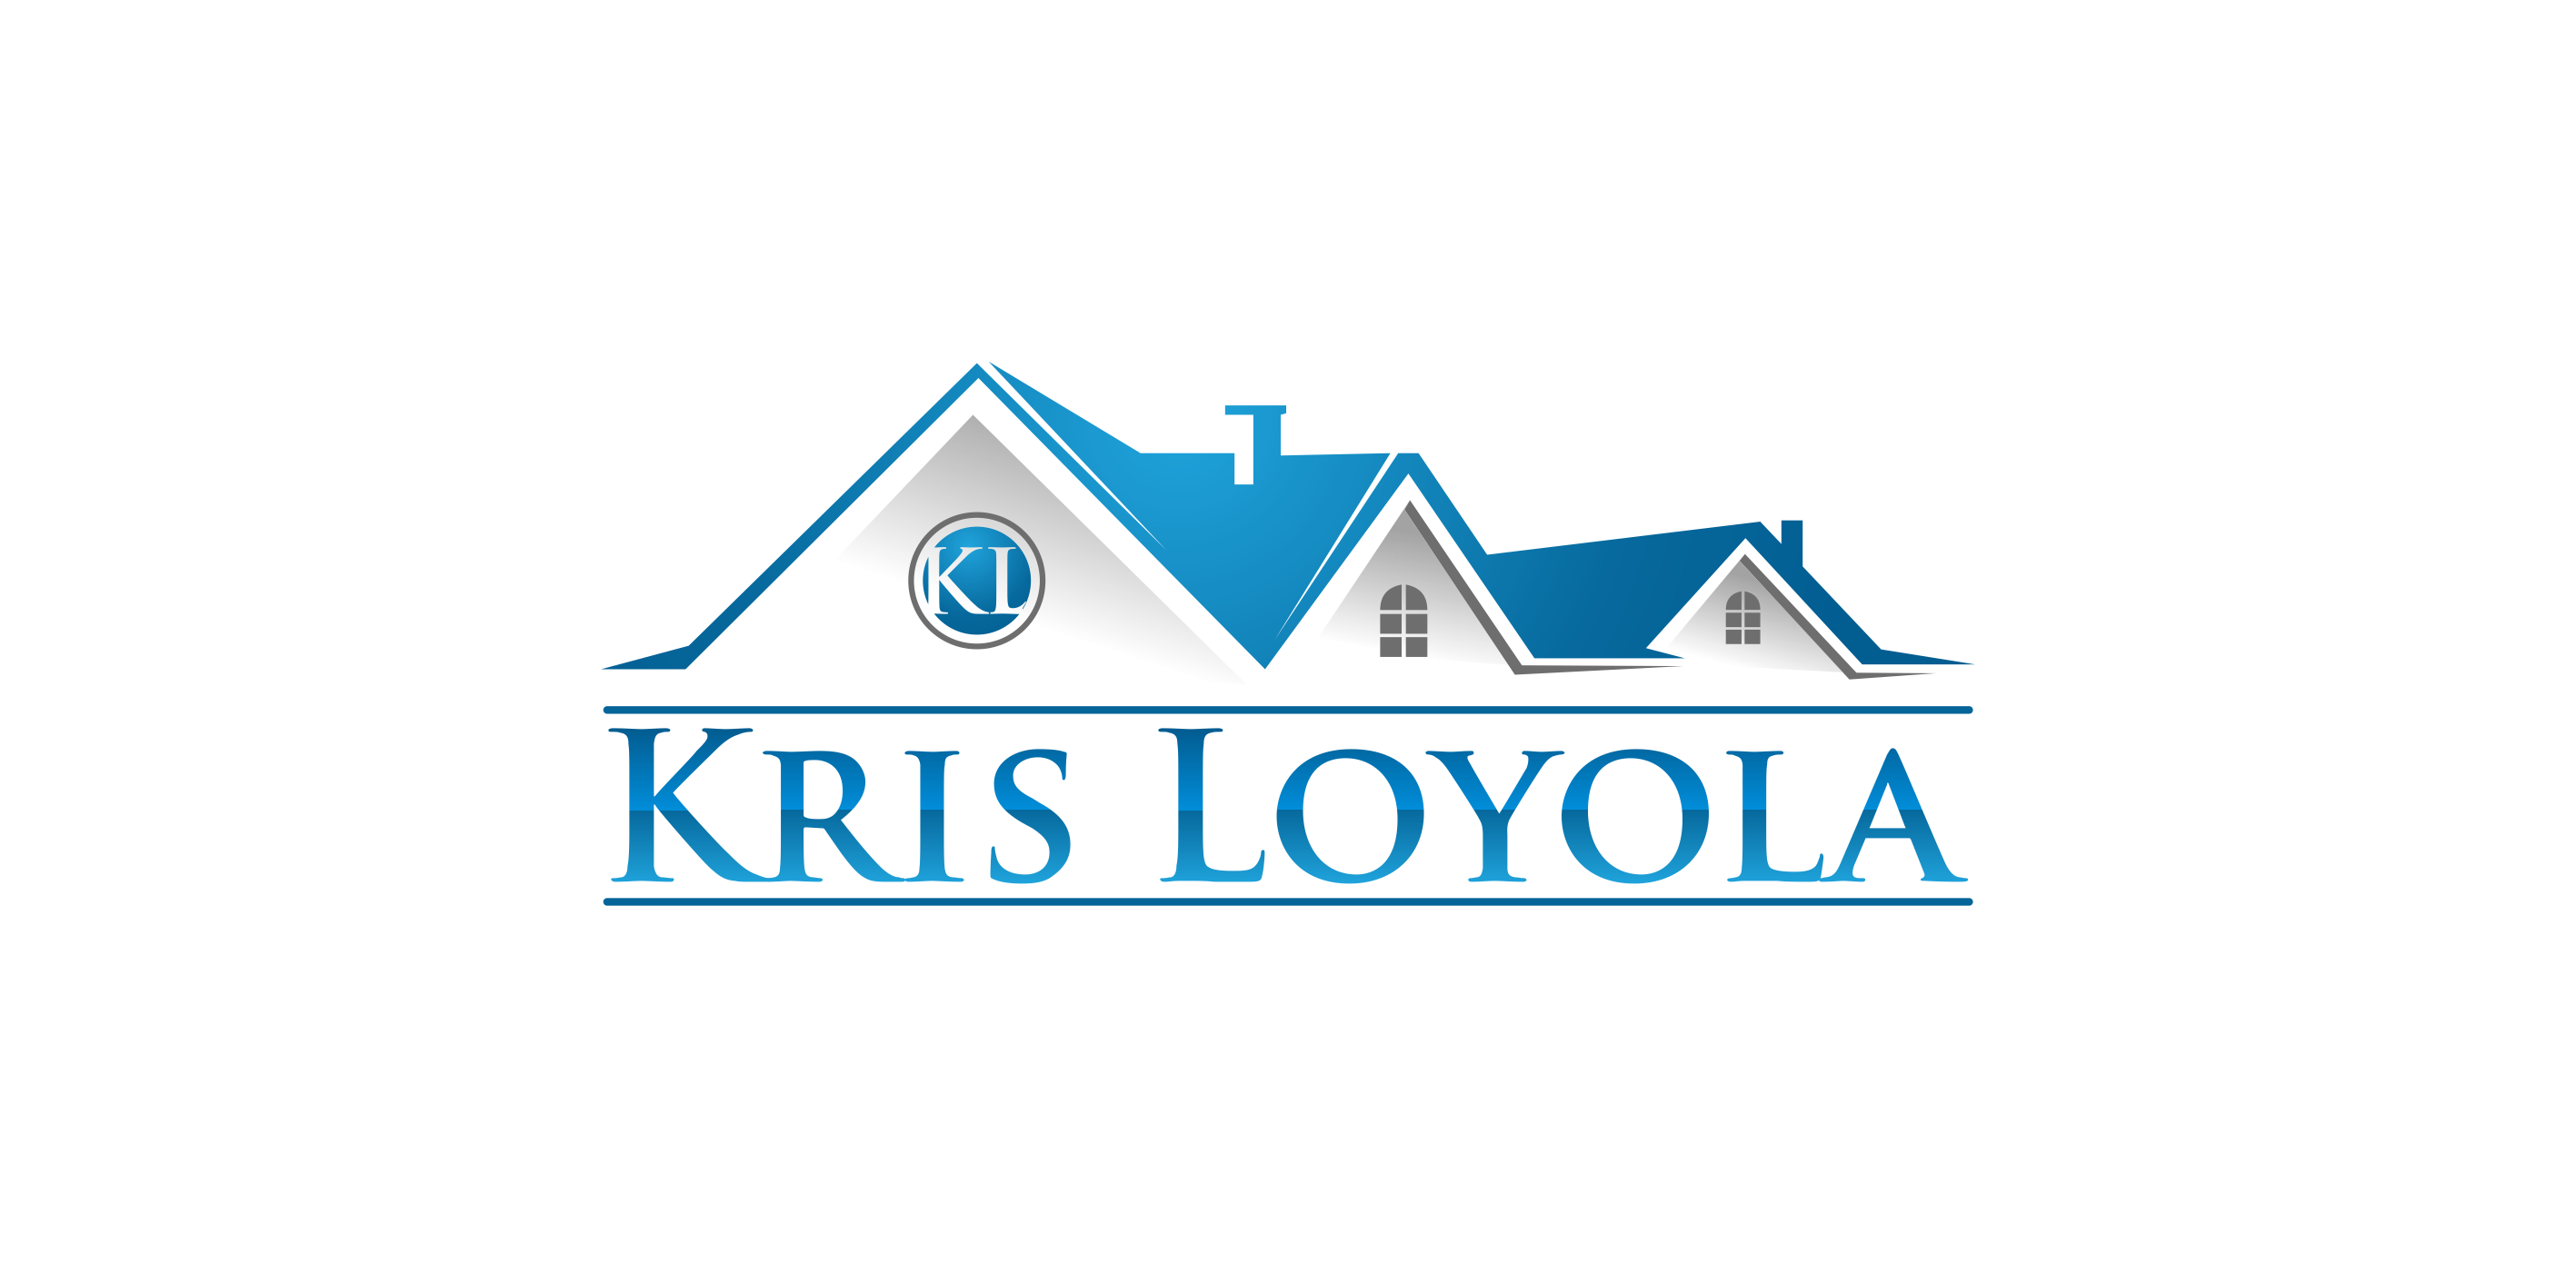 Logo Design by Muhammad Aslam - Entry No. 76 in the Logo Design Contest Kris Loyola Logo Design.